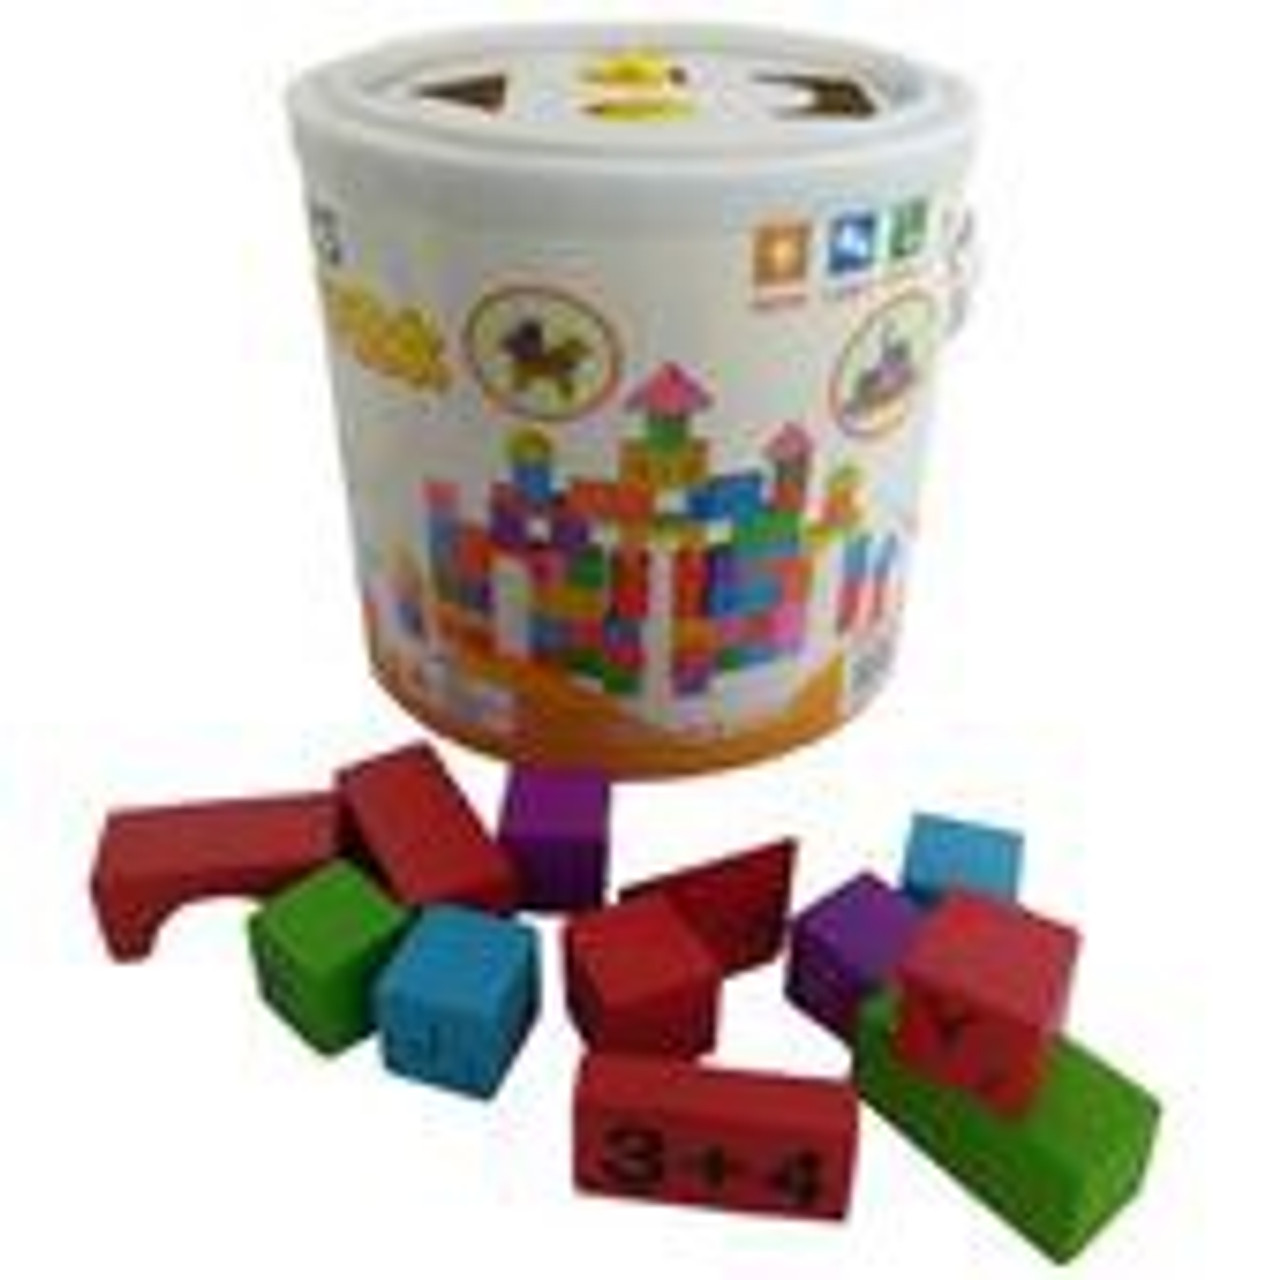 Lucky Tree Digital Building Blocks 100pcs at Baby Barn Discounts One hundred colourful building blocks in their own storage tub. This set has a variety of shapes, printed with numbers, symbols and letters.